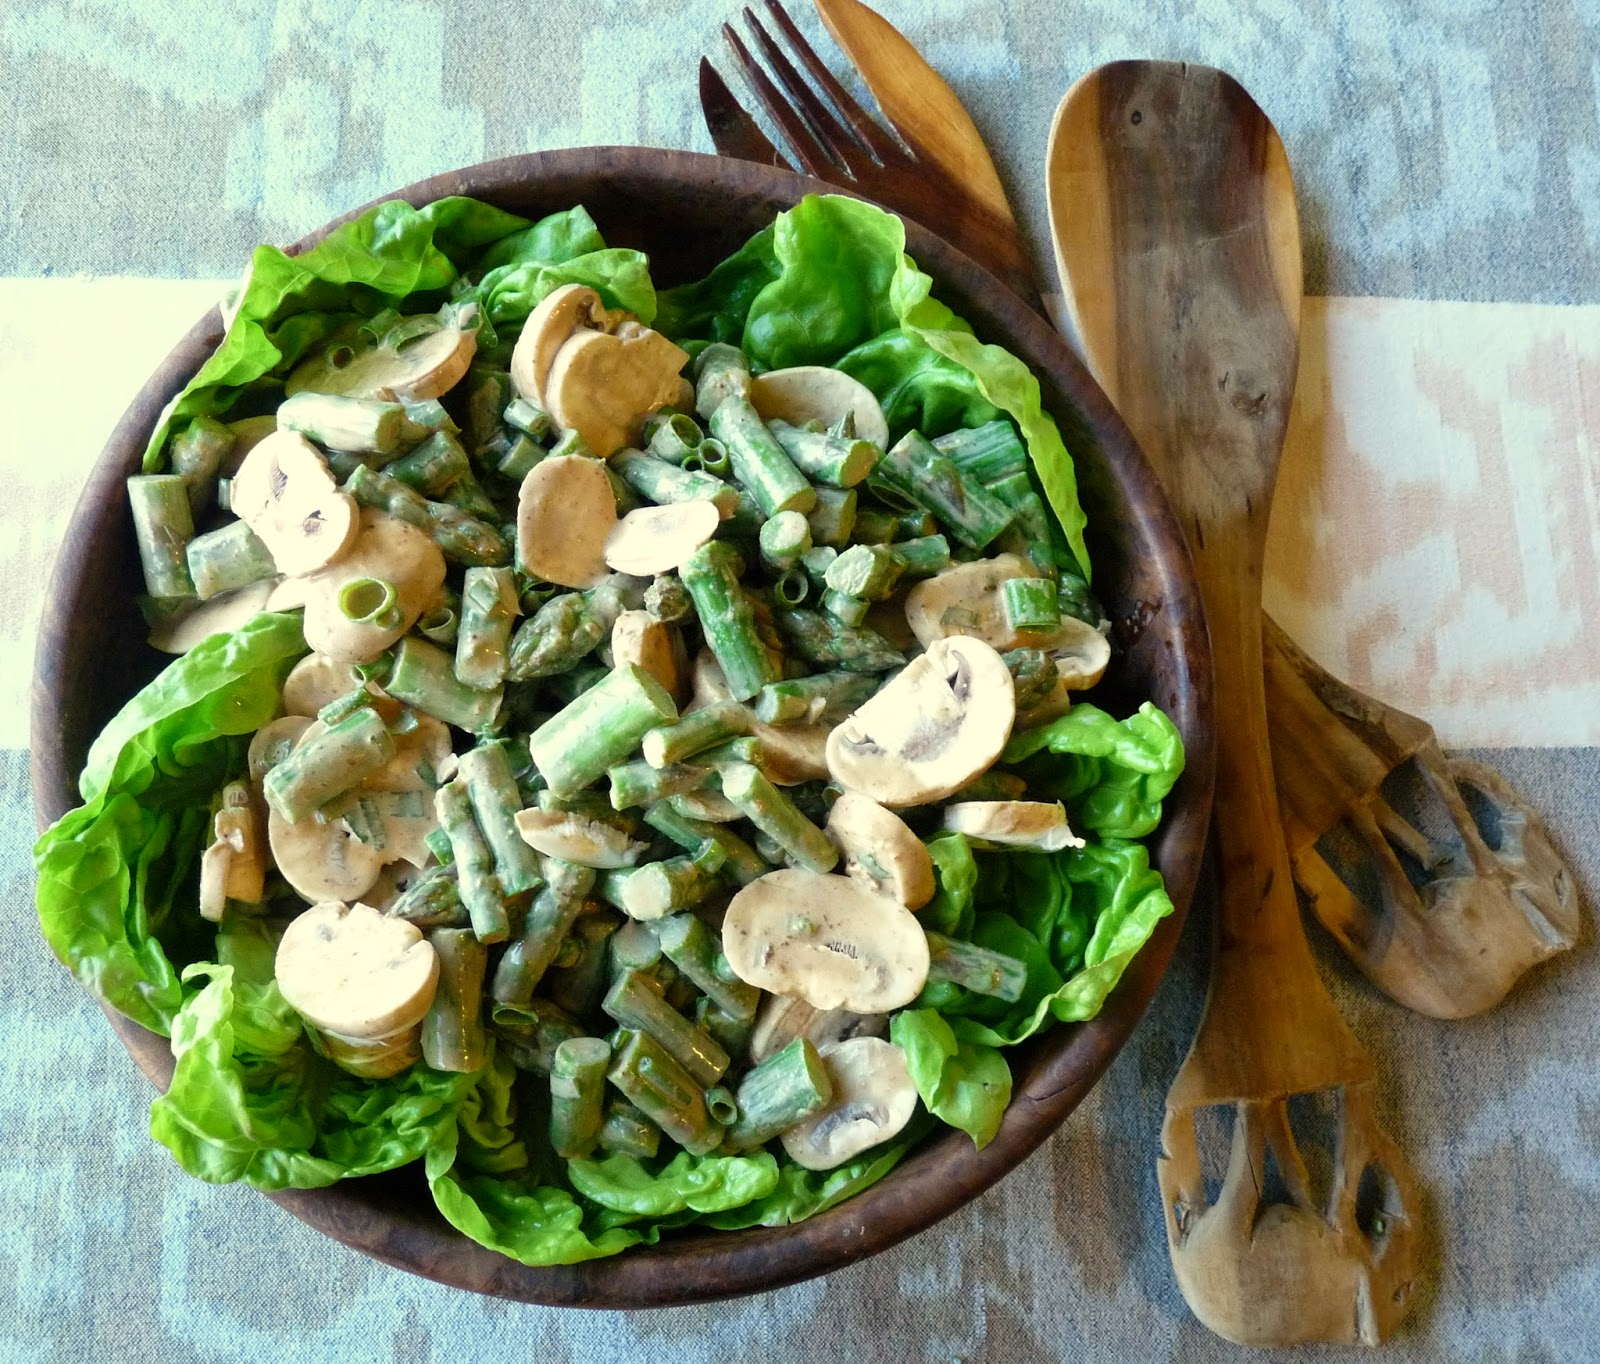 Asparagus Mushroom Salad with Mustard-Miso Mayonnaise Dressing